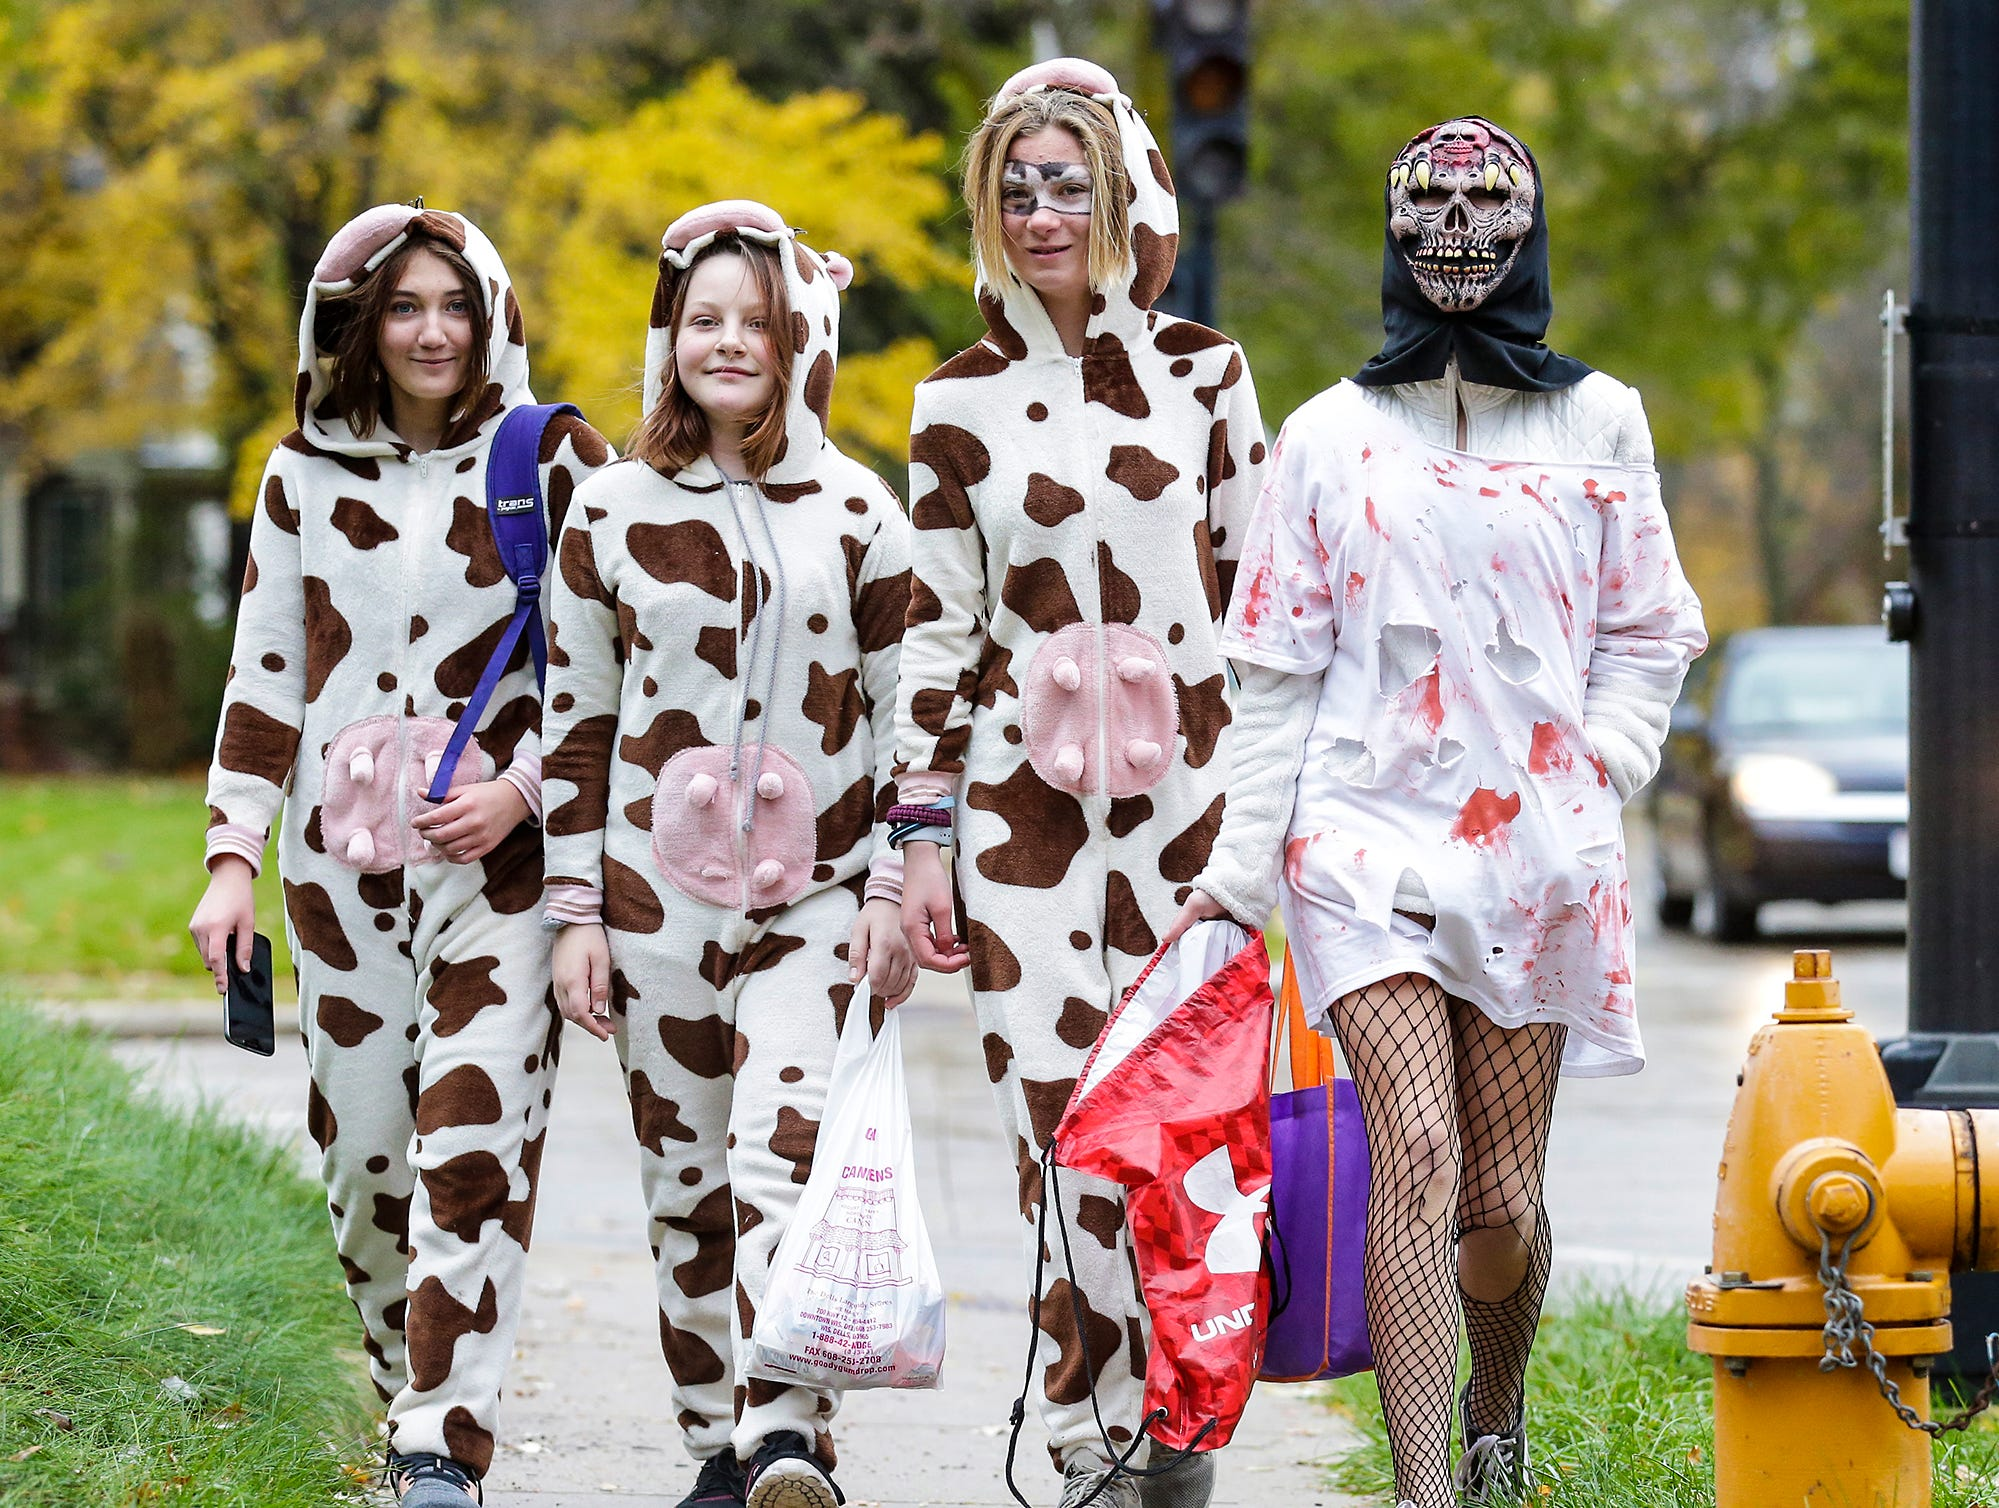 Kristina Molina, Alana Pierce and Olivia and Annamae Schnese of Fond du Lac were out trick or treating Sunday, October 28, 2018 in Fond du Lac, Wisconsin. Doug Raflik/USA TODAY NETWORK-Wisconsin